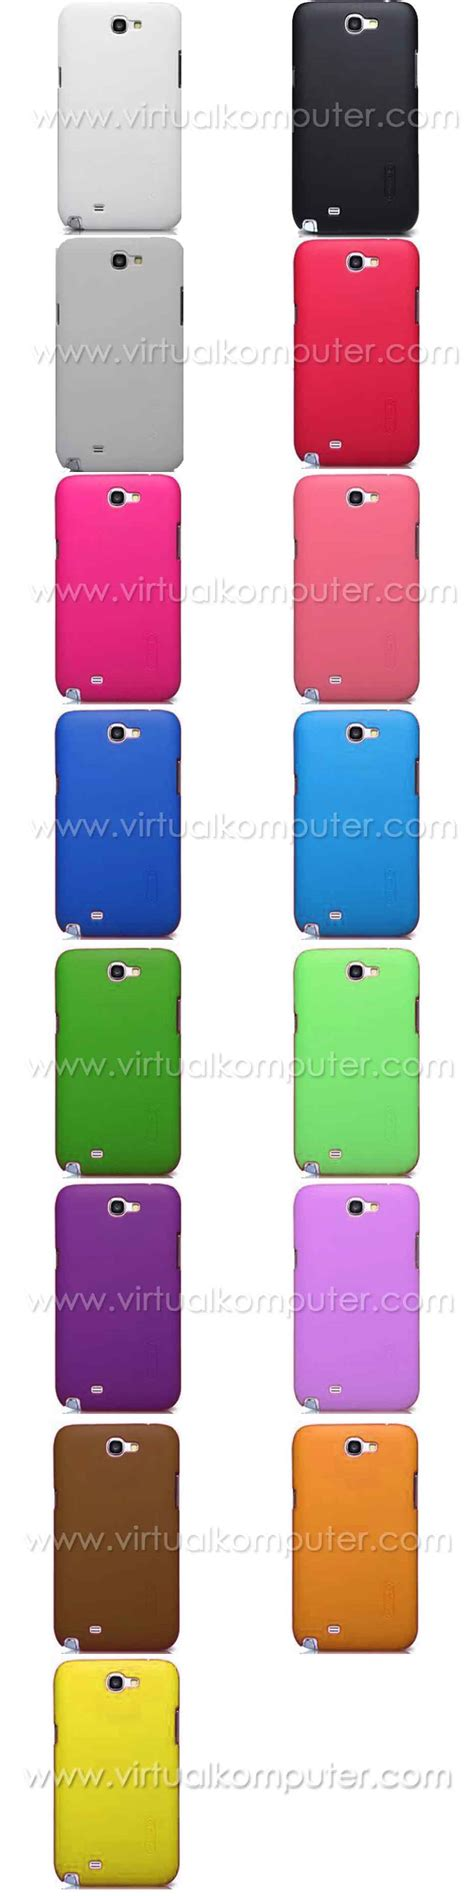 Softcase Htc One 5 areahp softcase for samsung galaxy note2 n7100